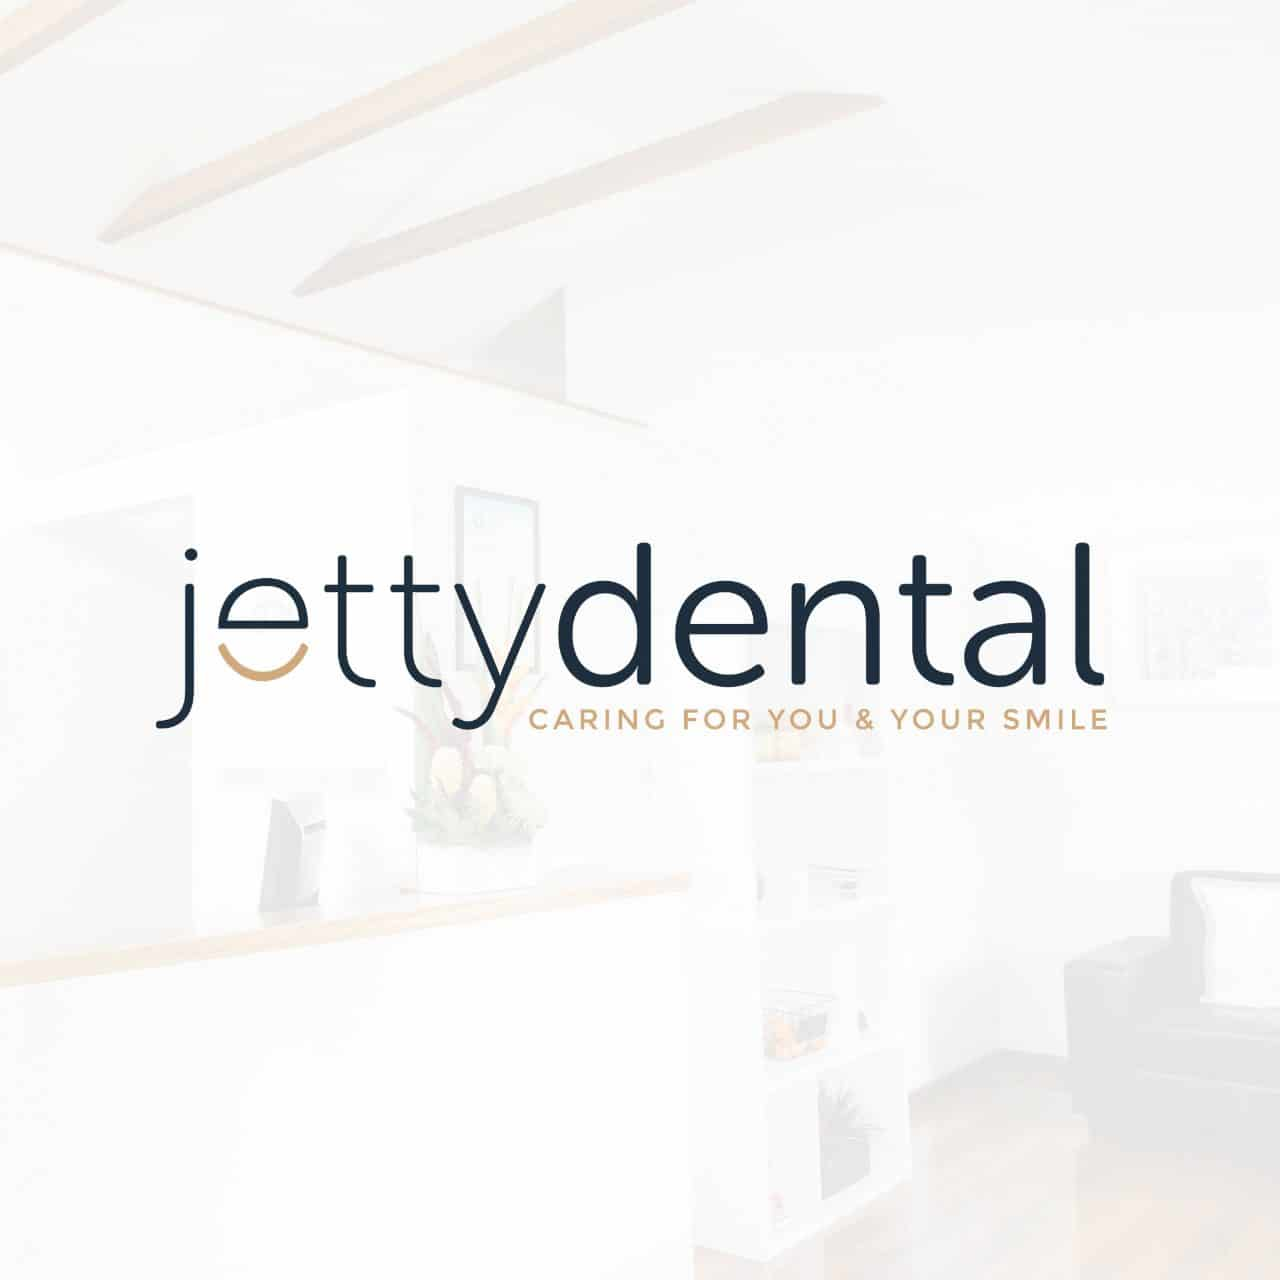 jetty dental logo design coffs harbour